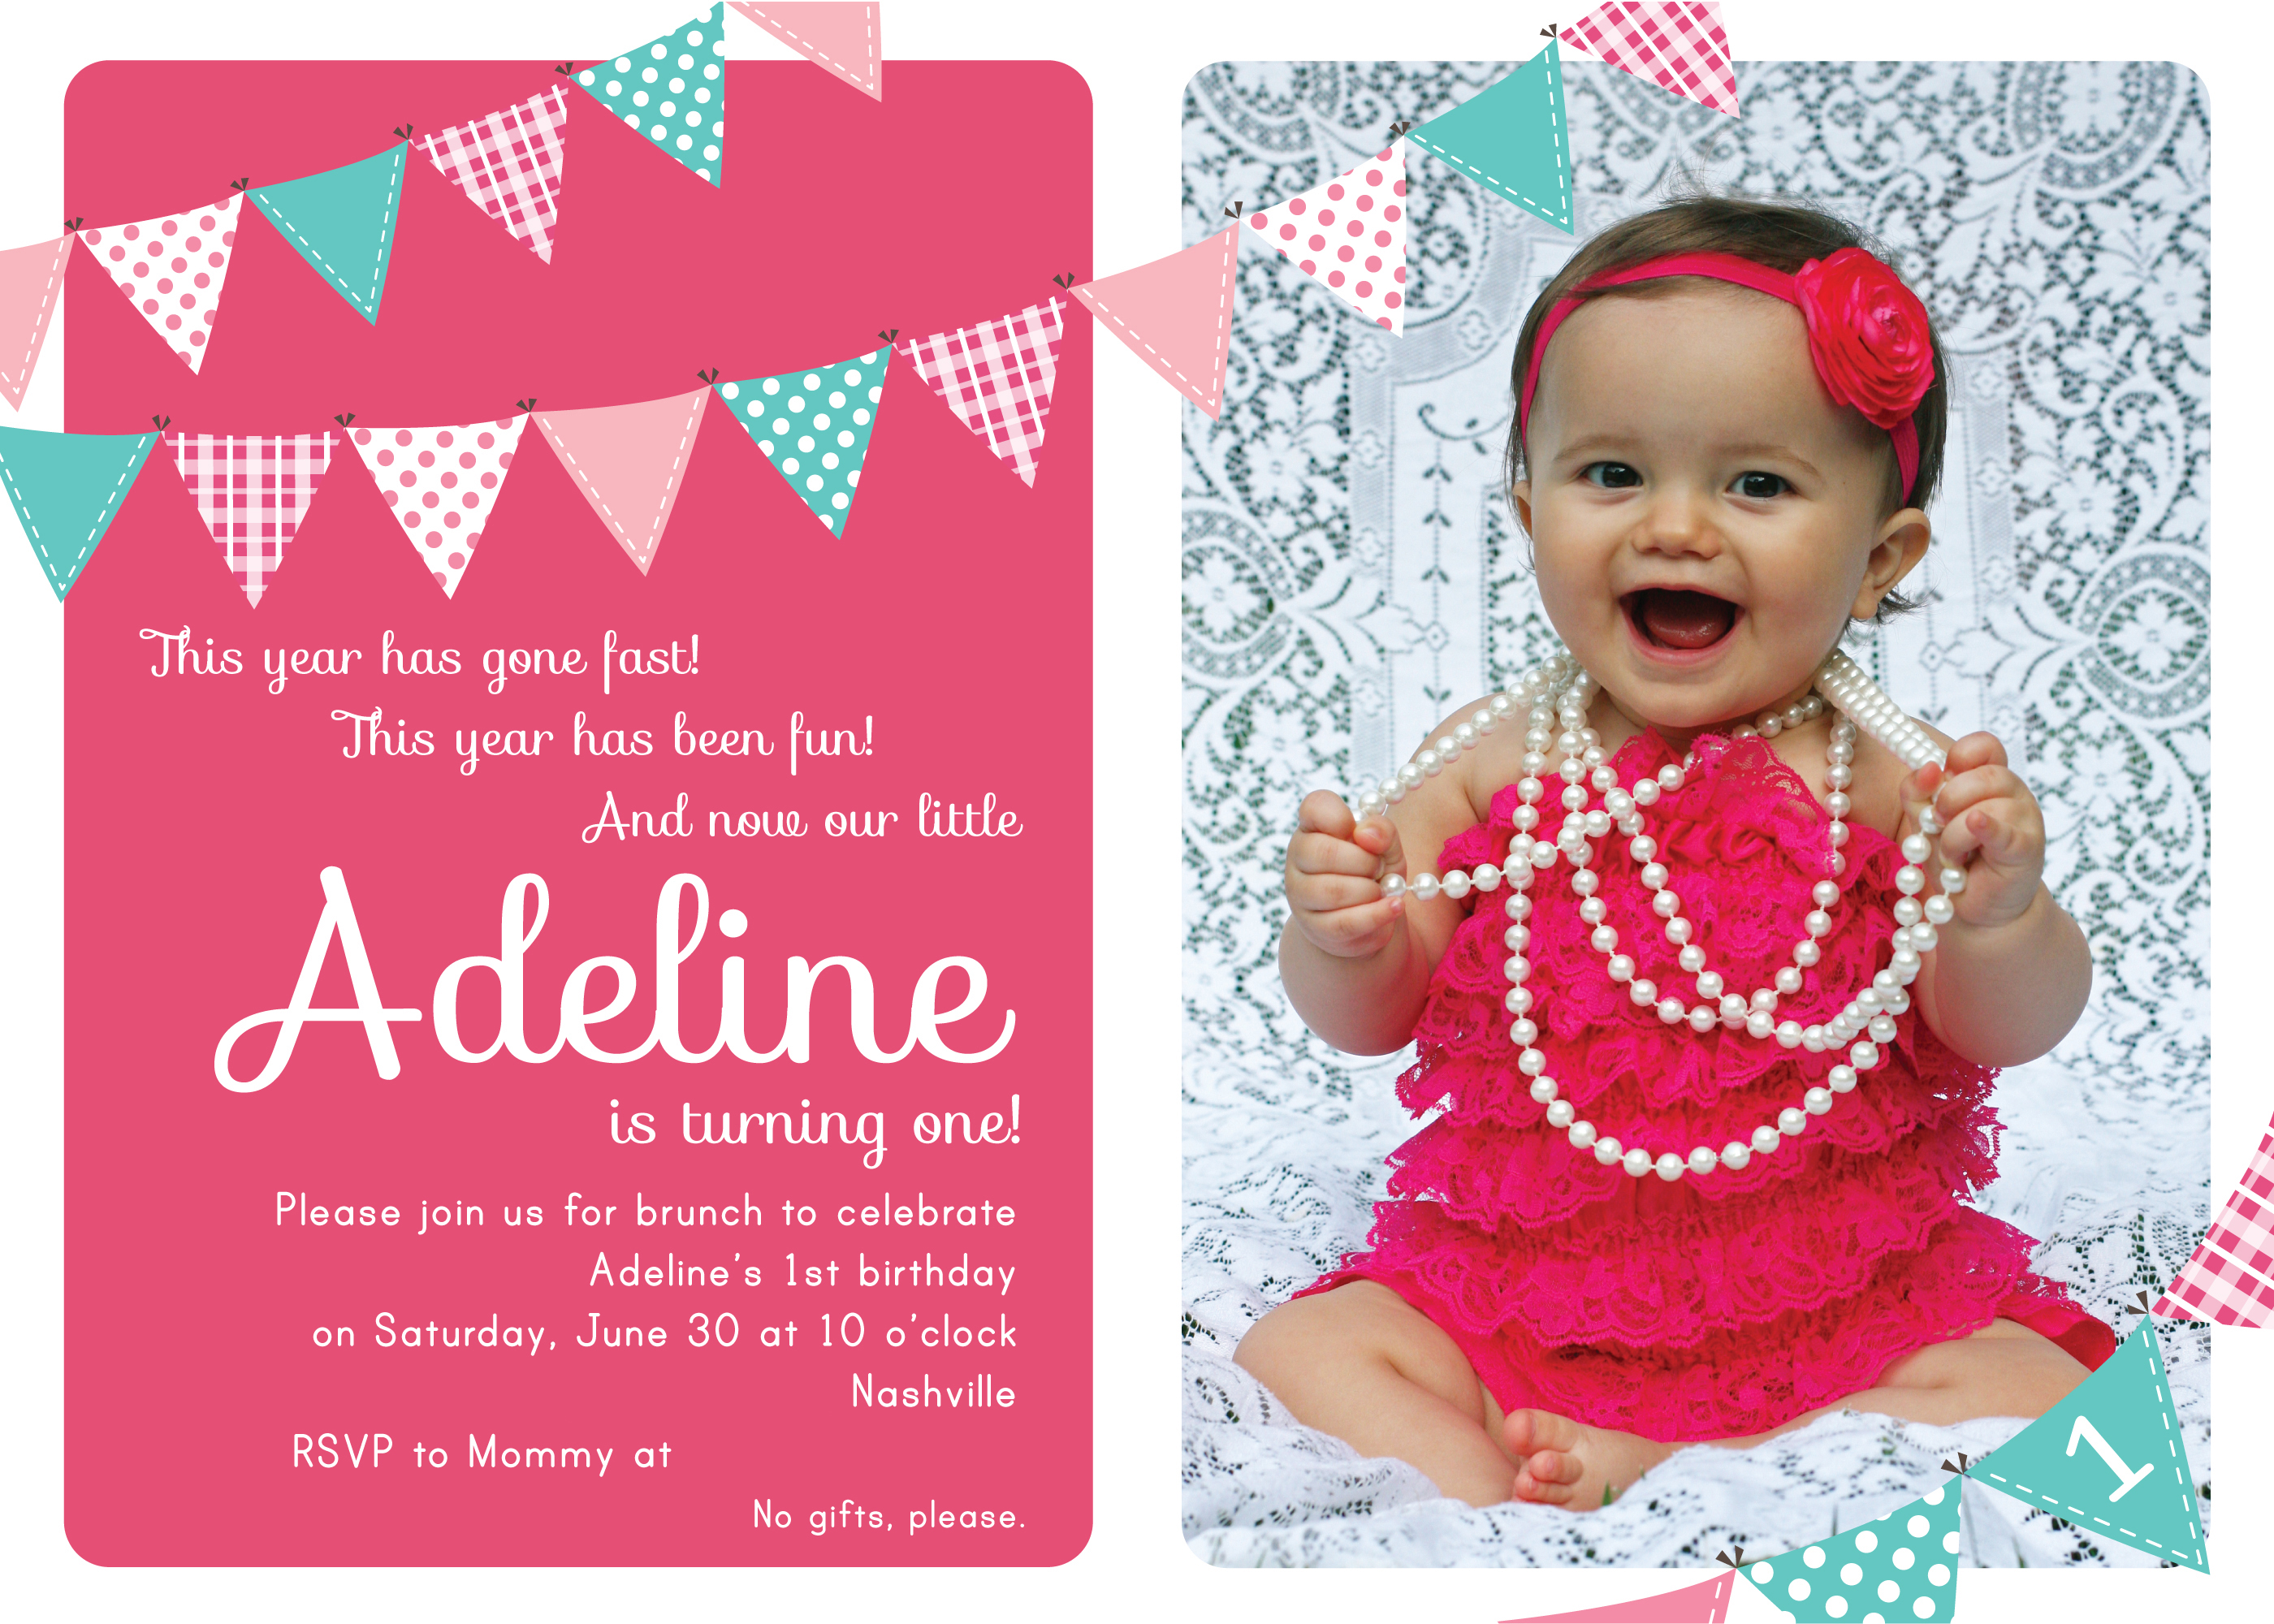 1st birthday invitation quotes for baby girl ; 1St-Birthday-Photo-Invitations-combined-with-your-creativity-will-make-this-looks-awesome-2